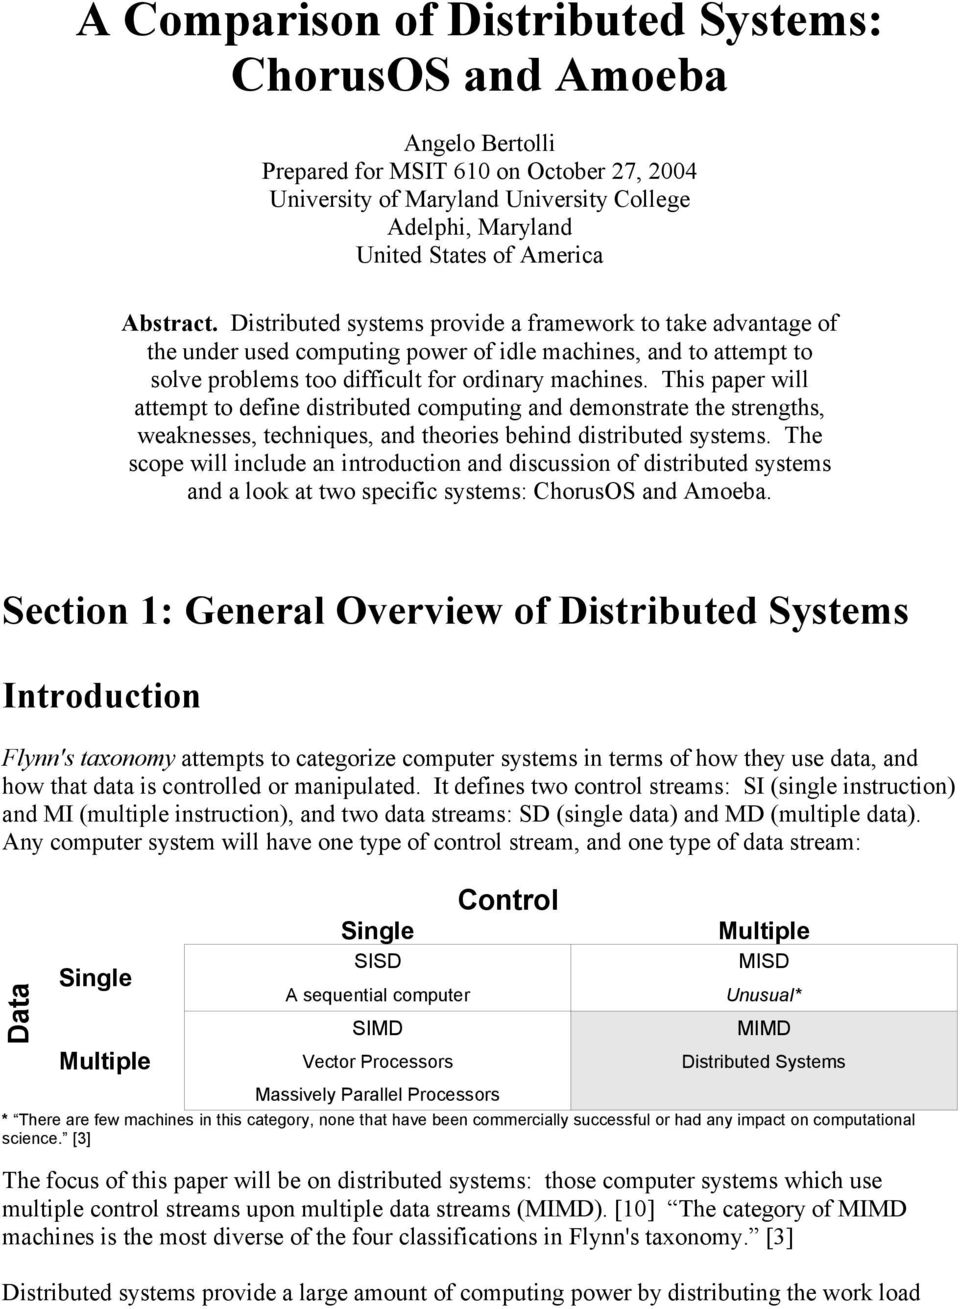 This paper will attempt to define distributed computing and demonstrate the strengths, weaknesses, techniques, and theories behind distributed systems.